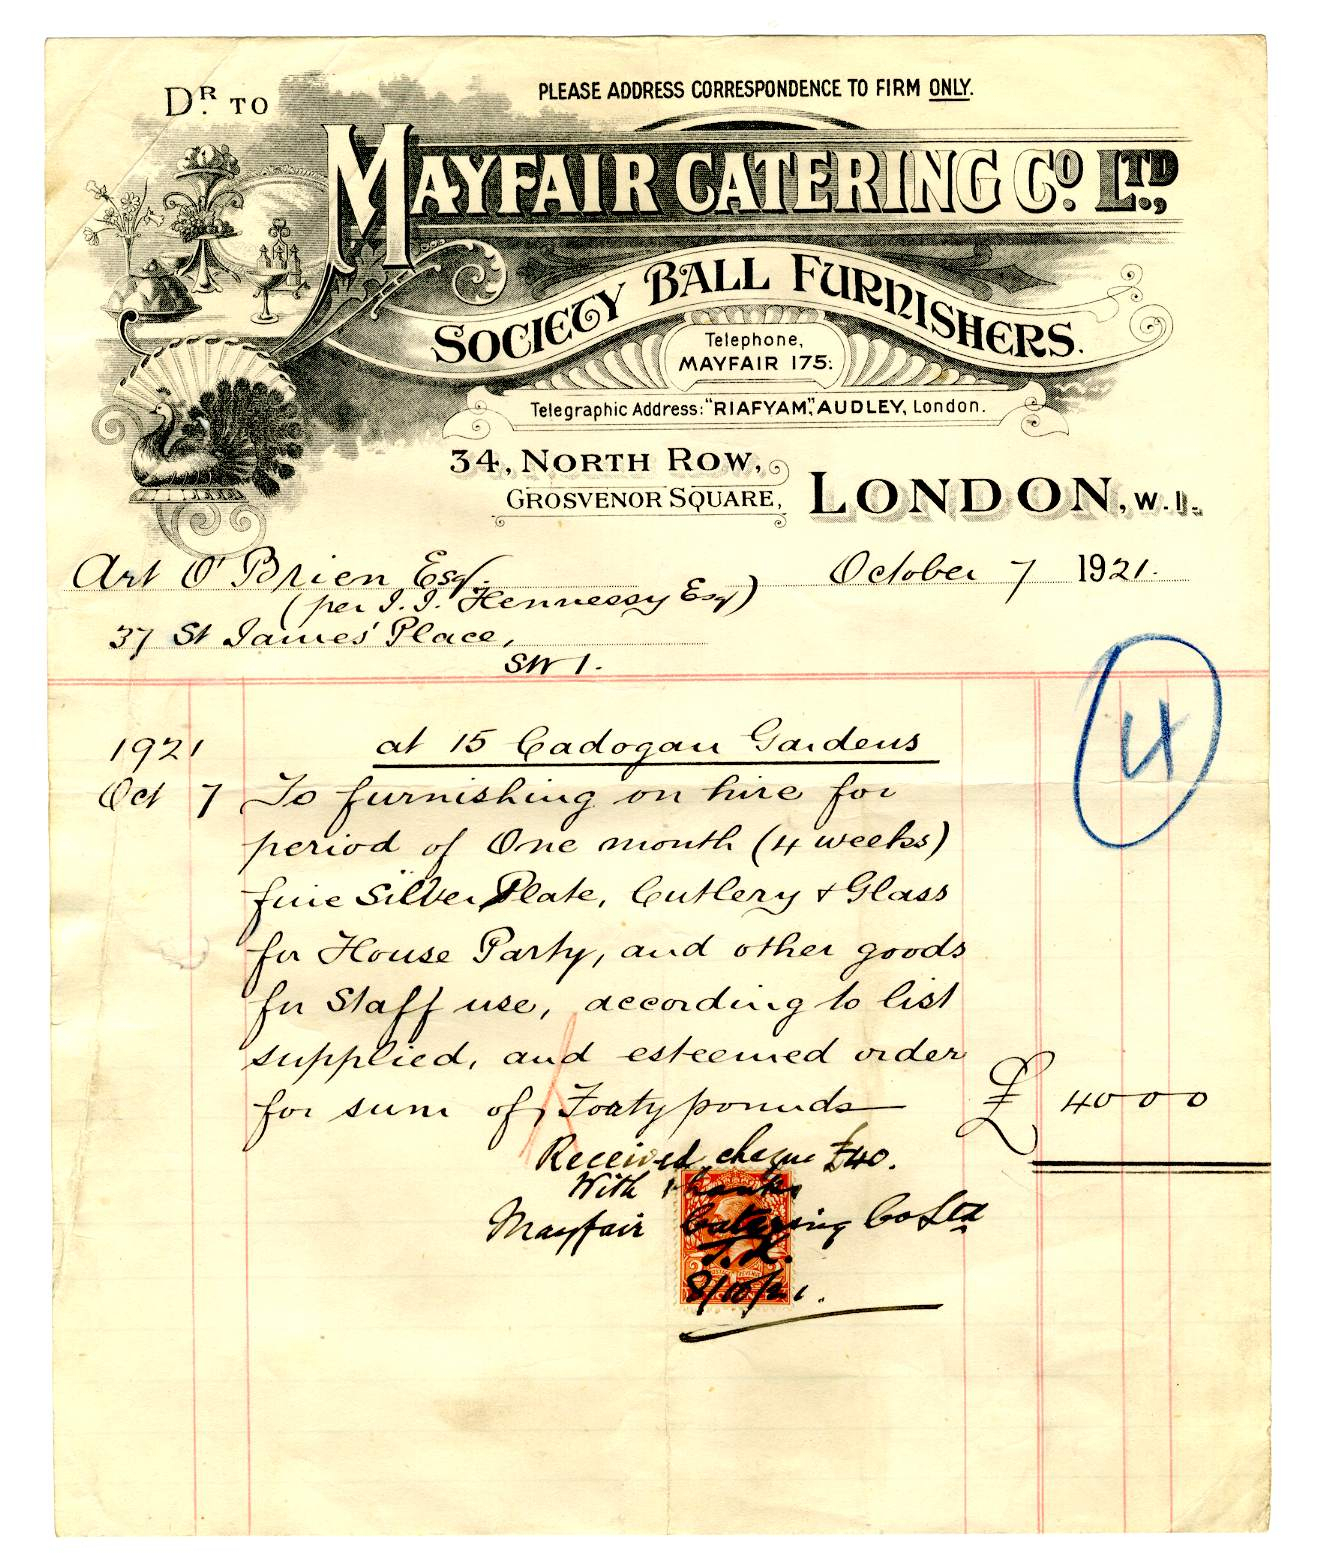 Mayfair Catering Company Invoice – 7 October 1921 | Treaty Within Catering Service Invoice